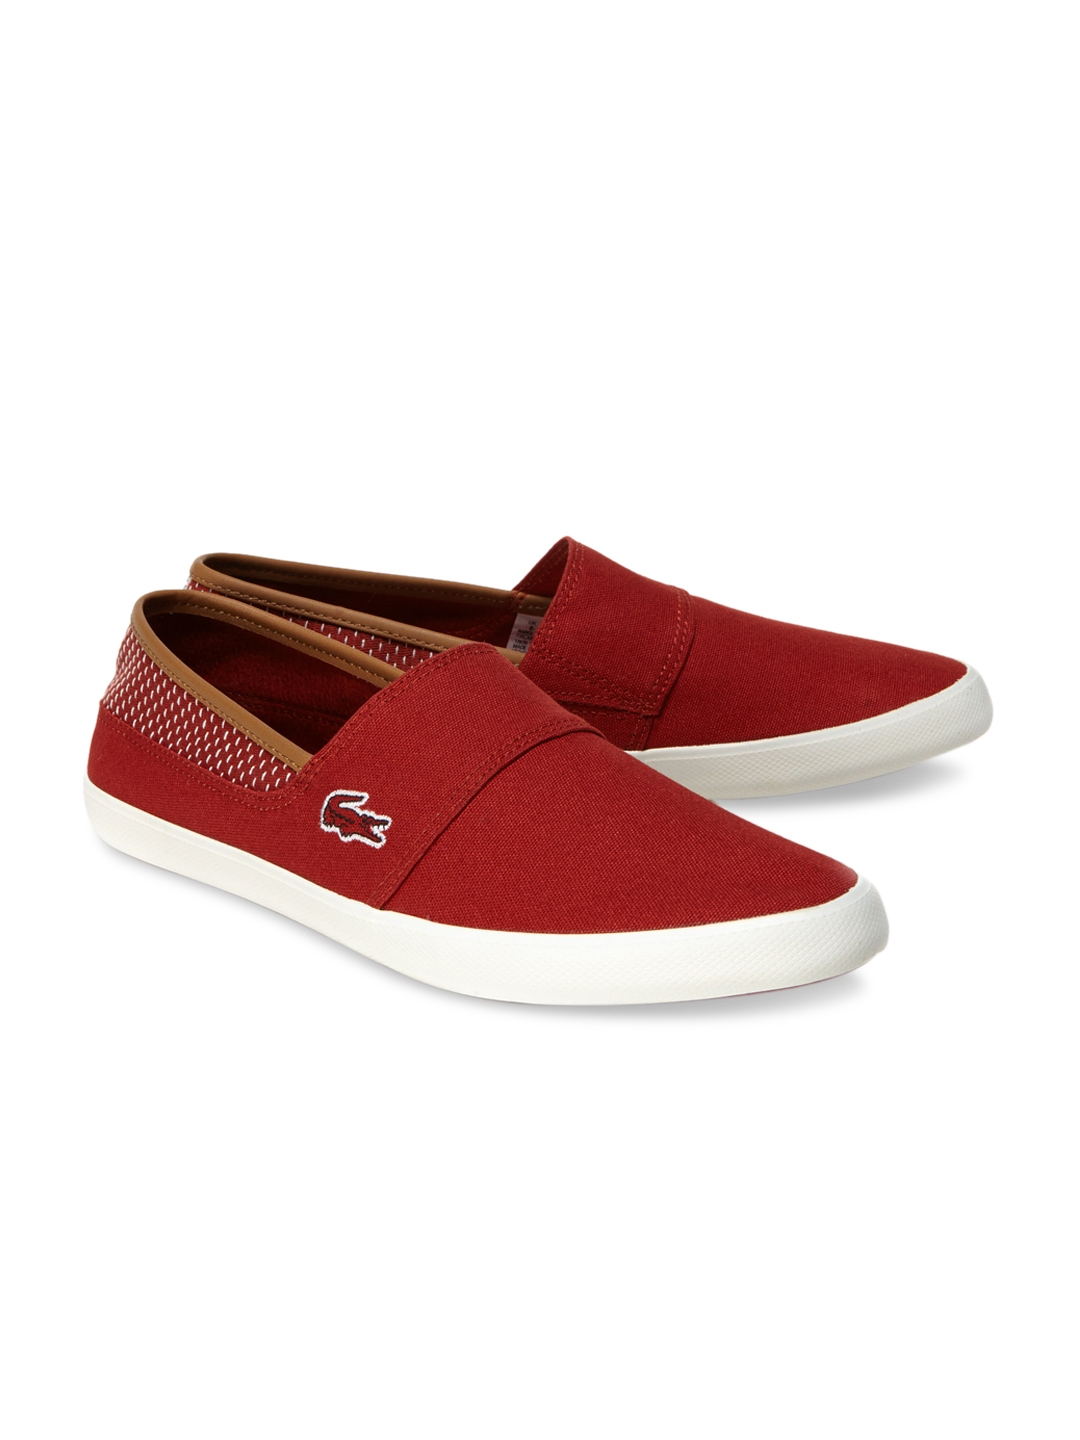 585e2610b99 Buy Lacoste Men Red Loafers - Casual Shoes for Men 4712665